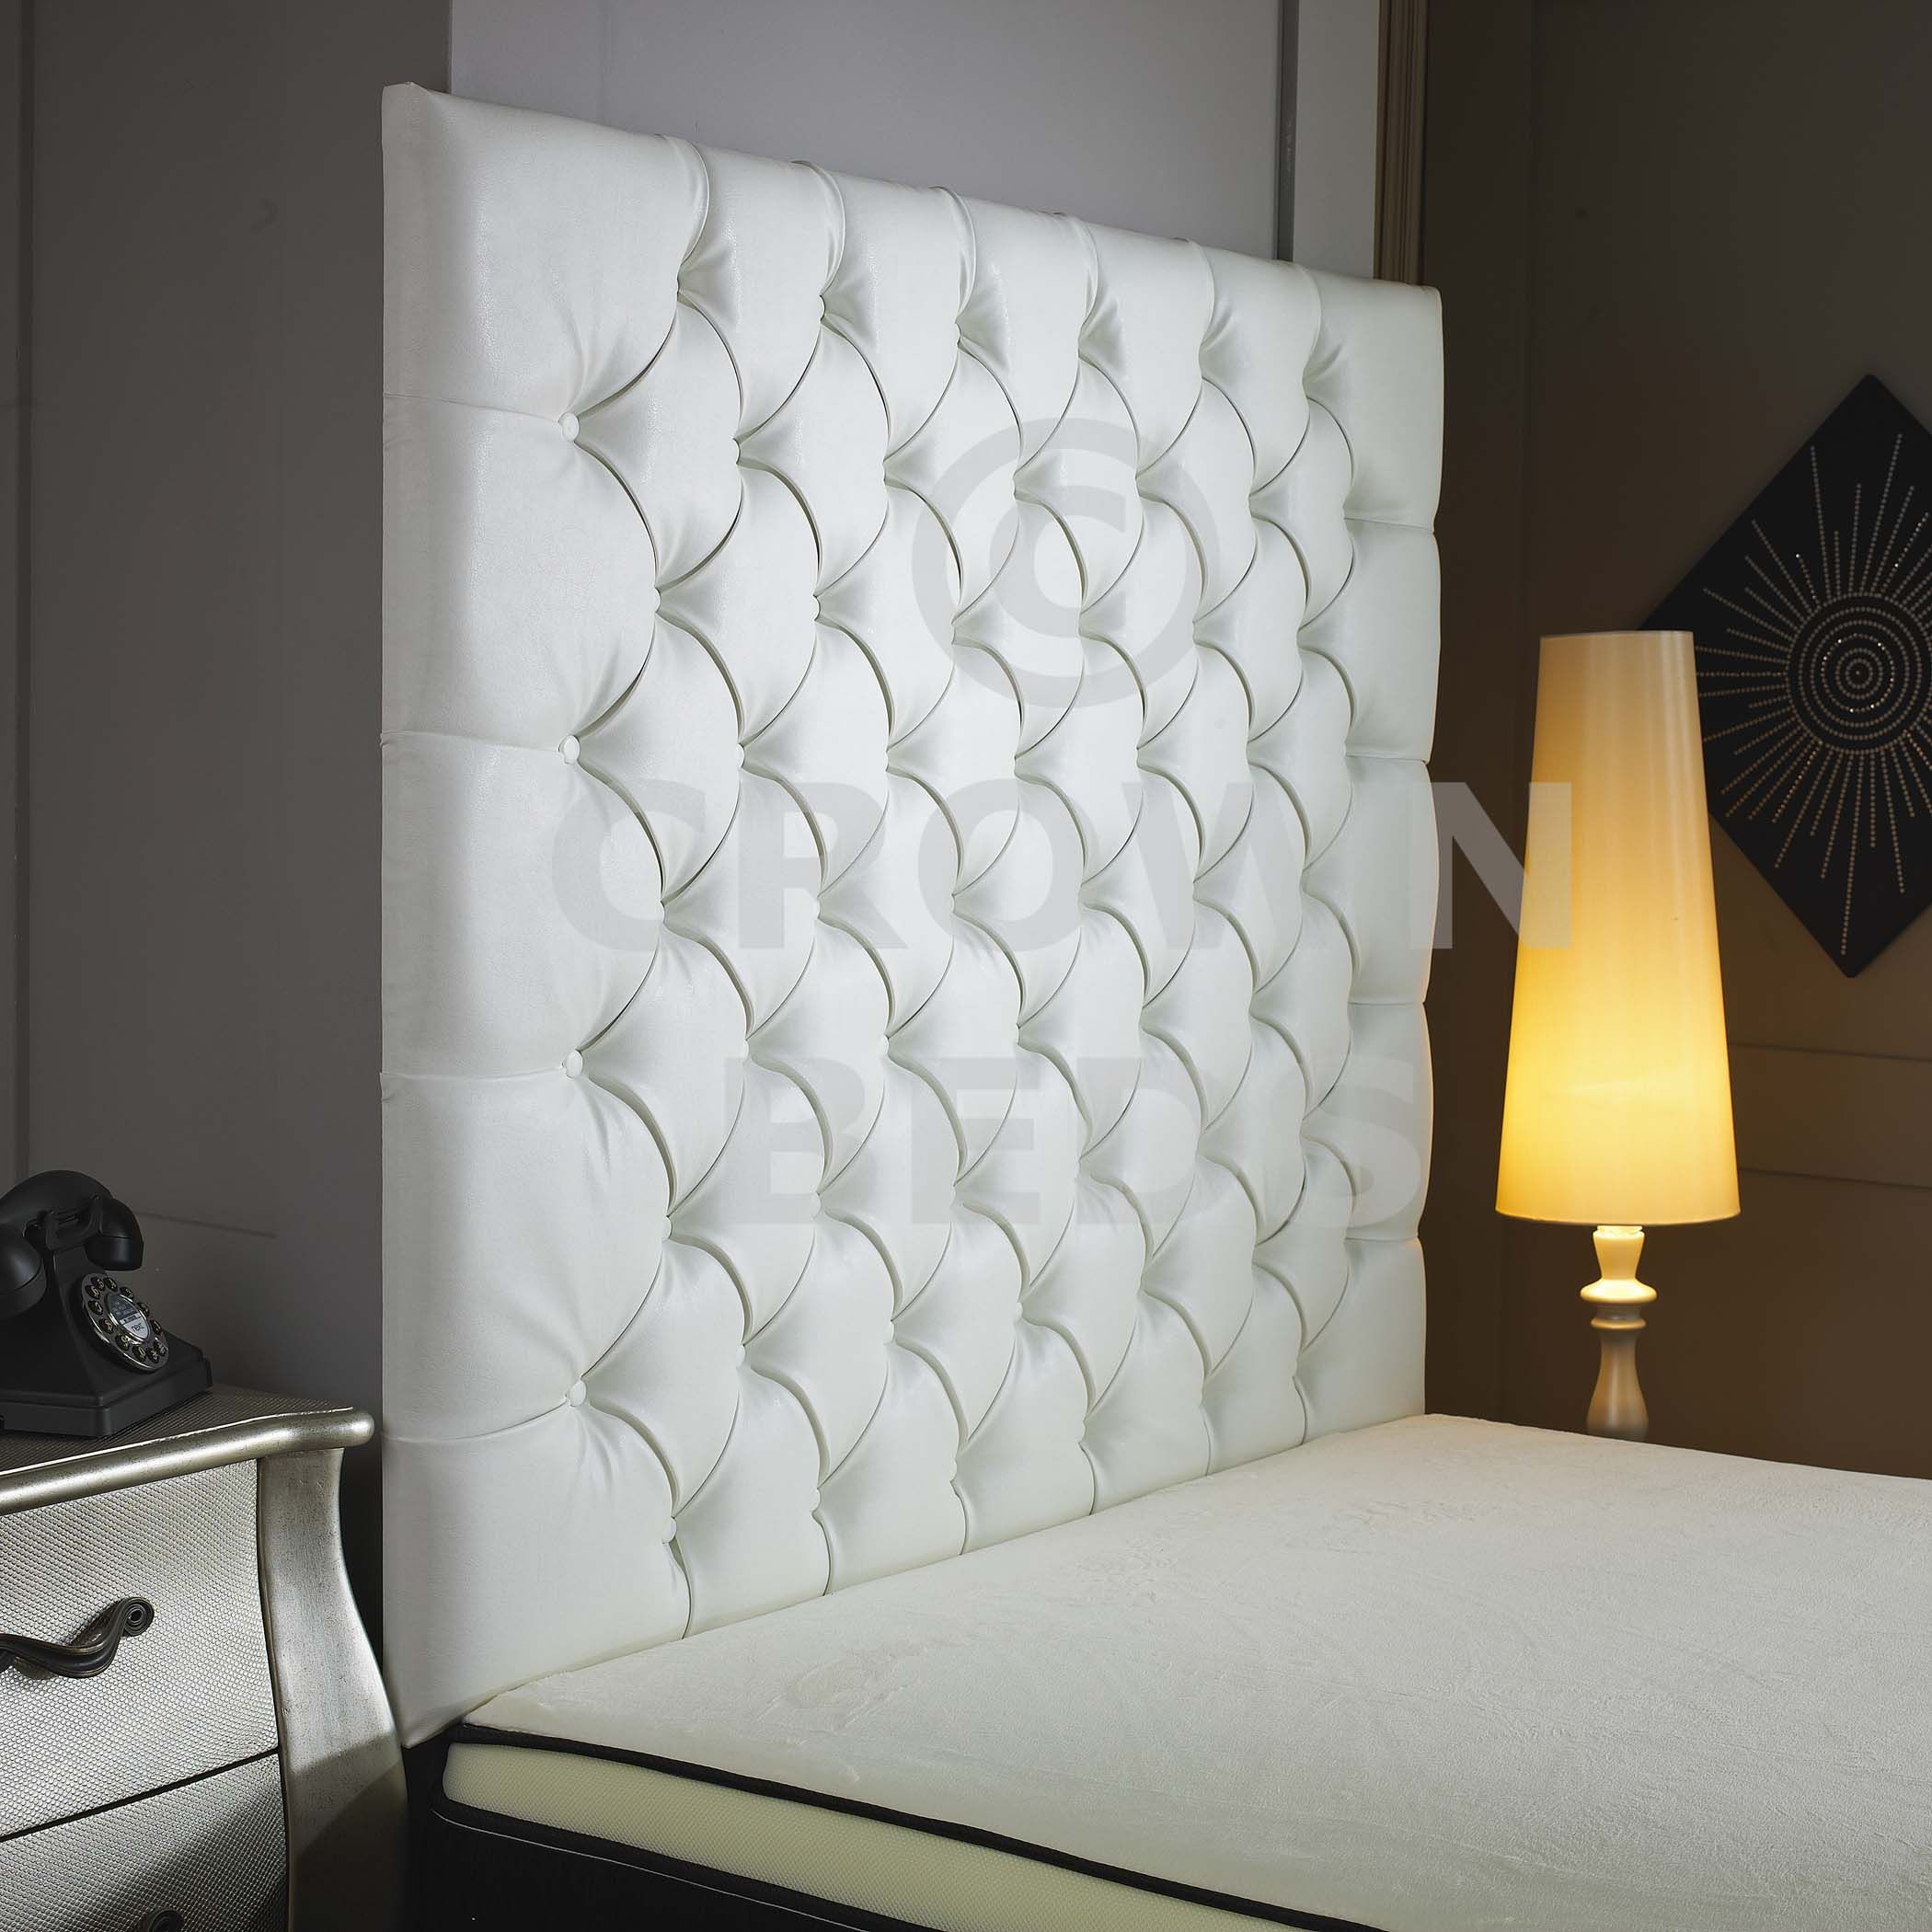 extra large headboards uk | TALL WHITE QUILTED BUTTONED HEADBOARD & extra large headboards uk | TALL WHITE QUILTED BUTTONED HEADBOARD ...